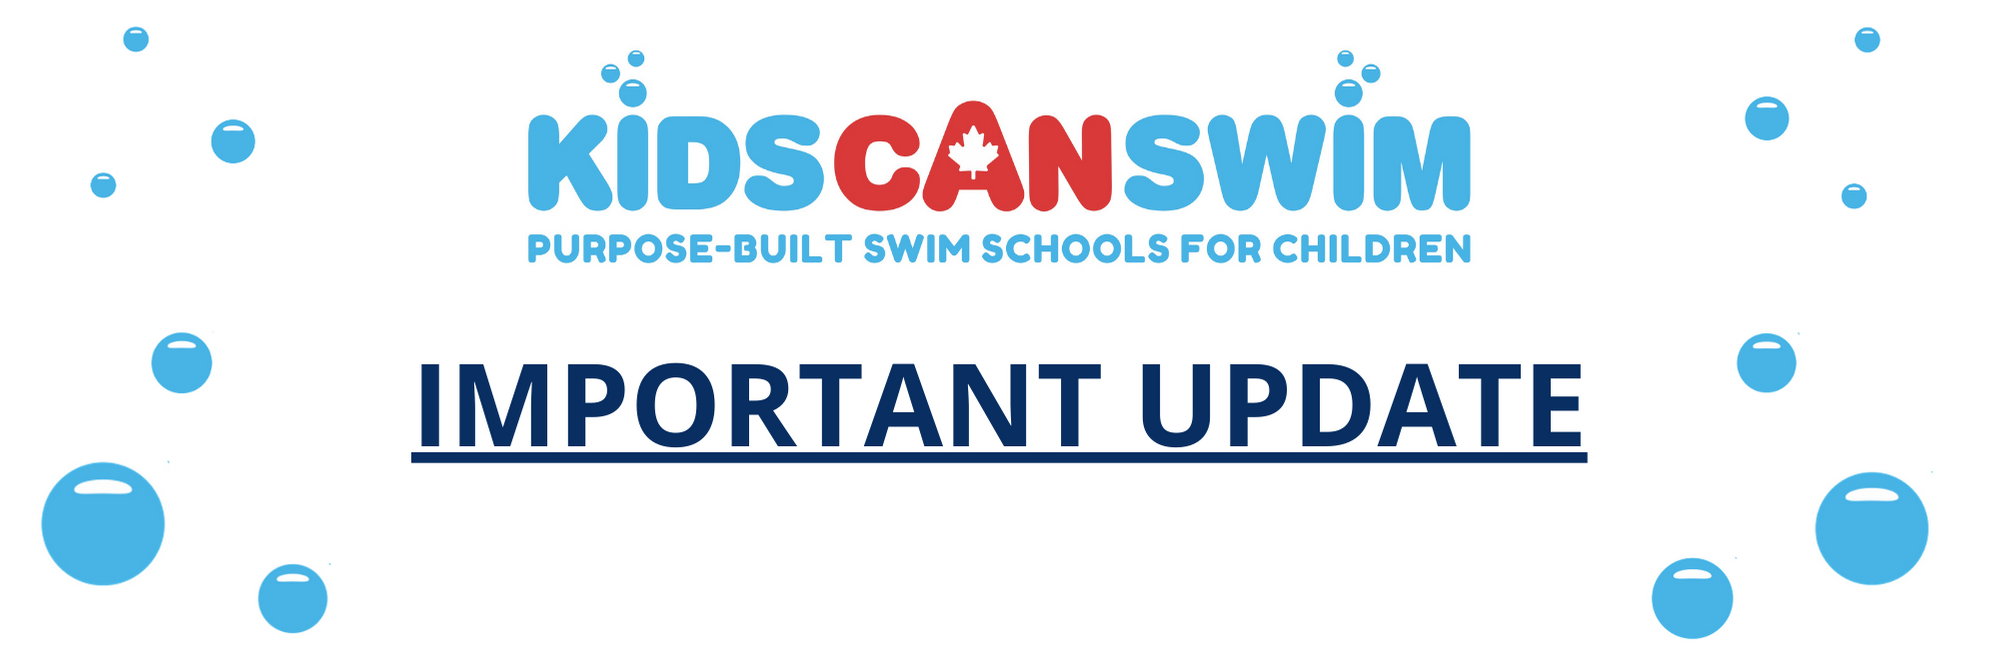 IMPORTANT UPDATE FROM KIDSCANSWIM